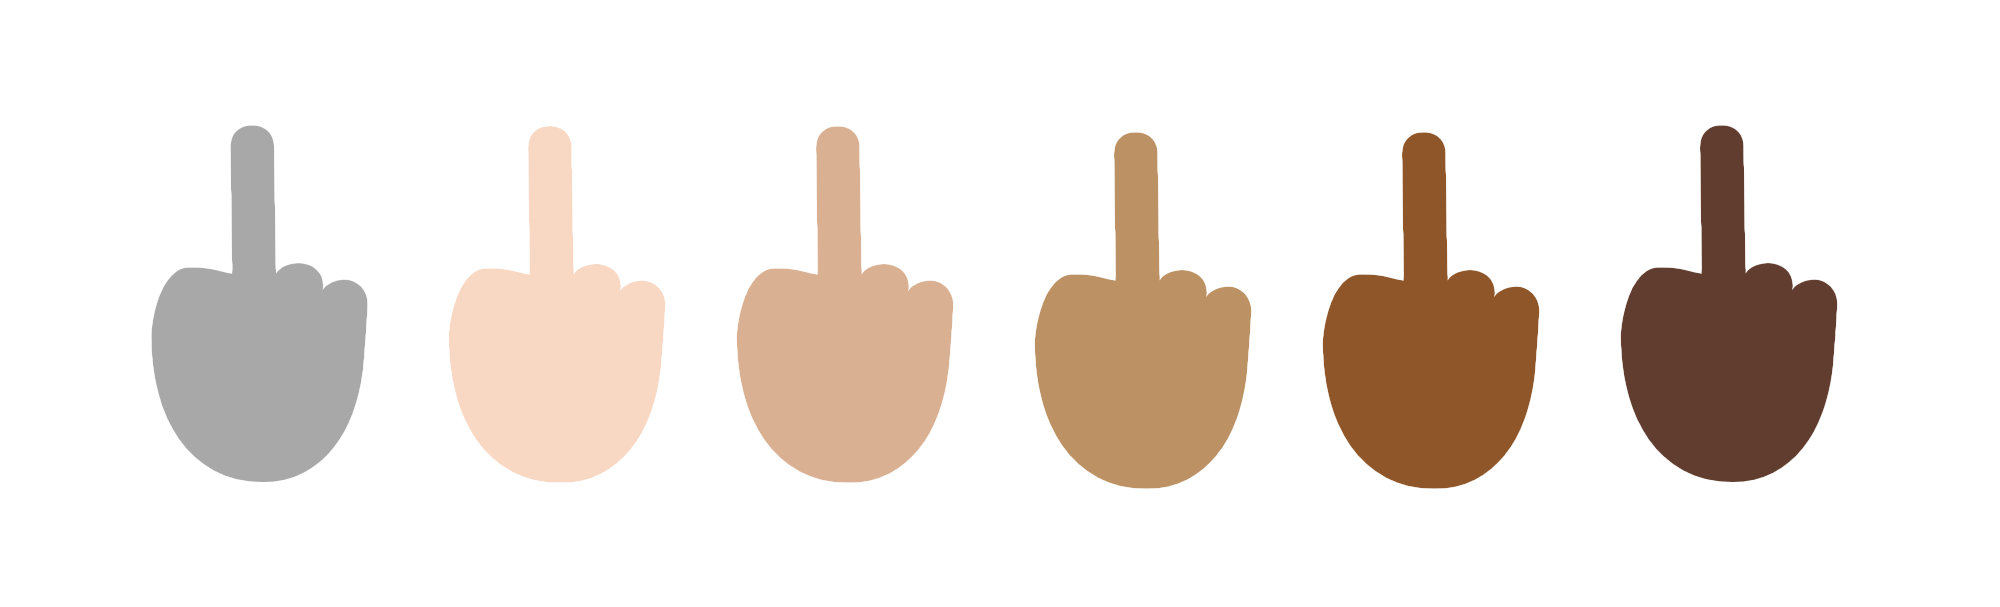 Microsoft Windows 10 Will Support That Middle Finger Emoji